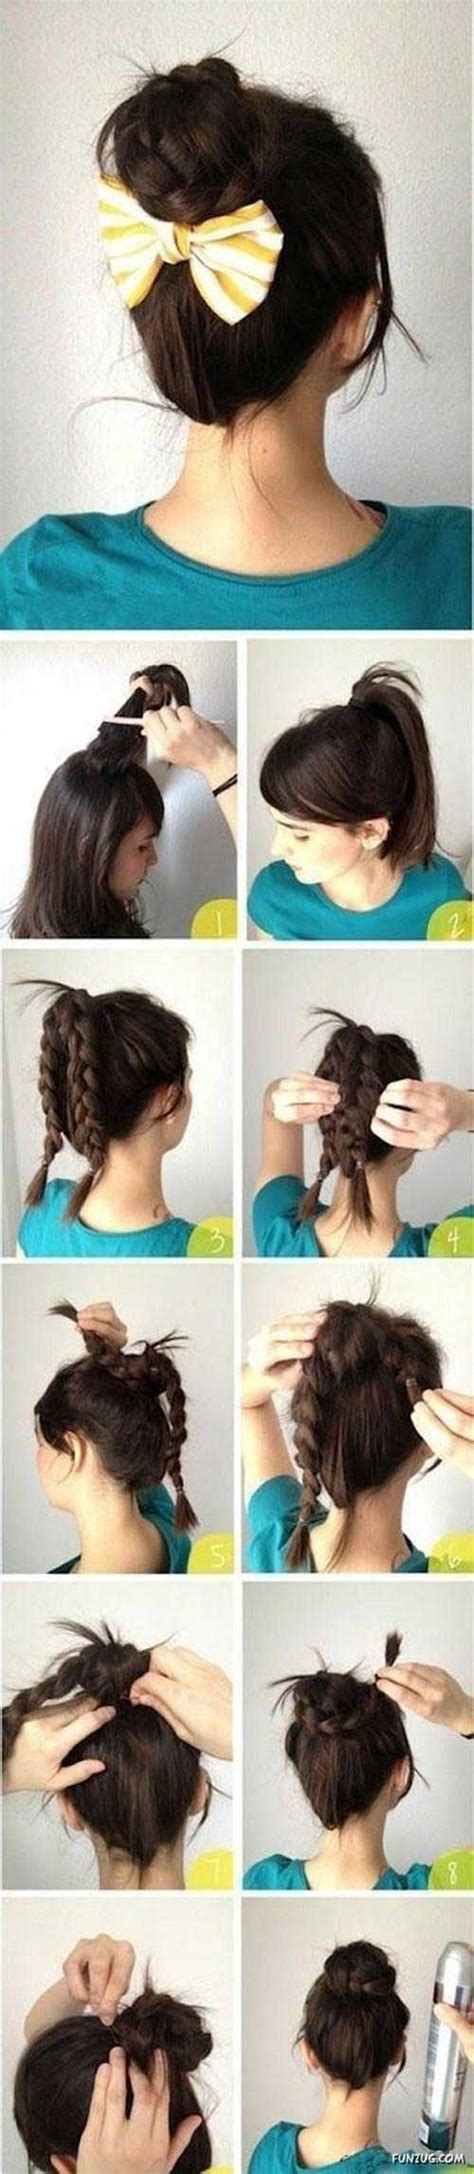 hairstyles you can do at home creative hairstyles that you can easily do at home